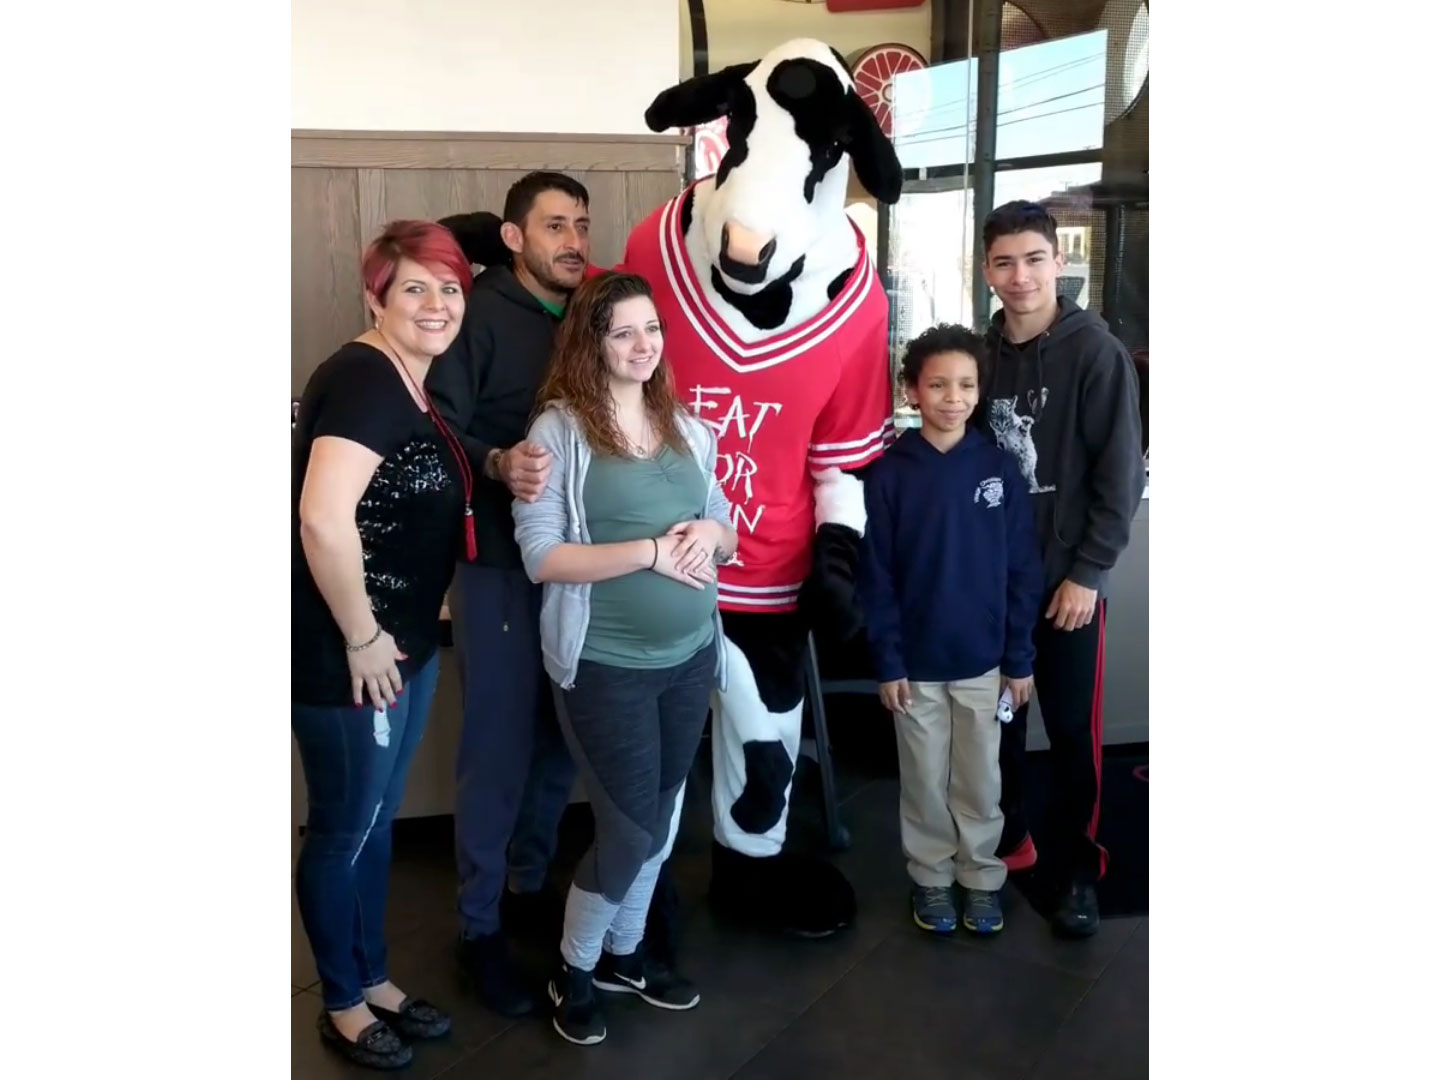 Soldier Dressed in Chick-fil-a Cow Costume